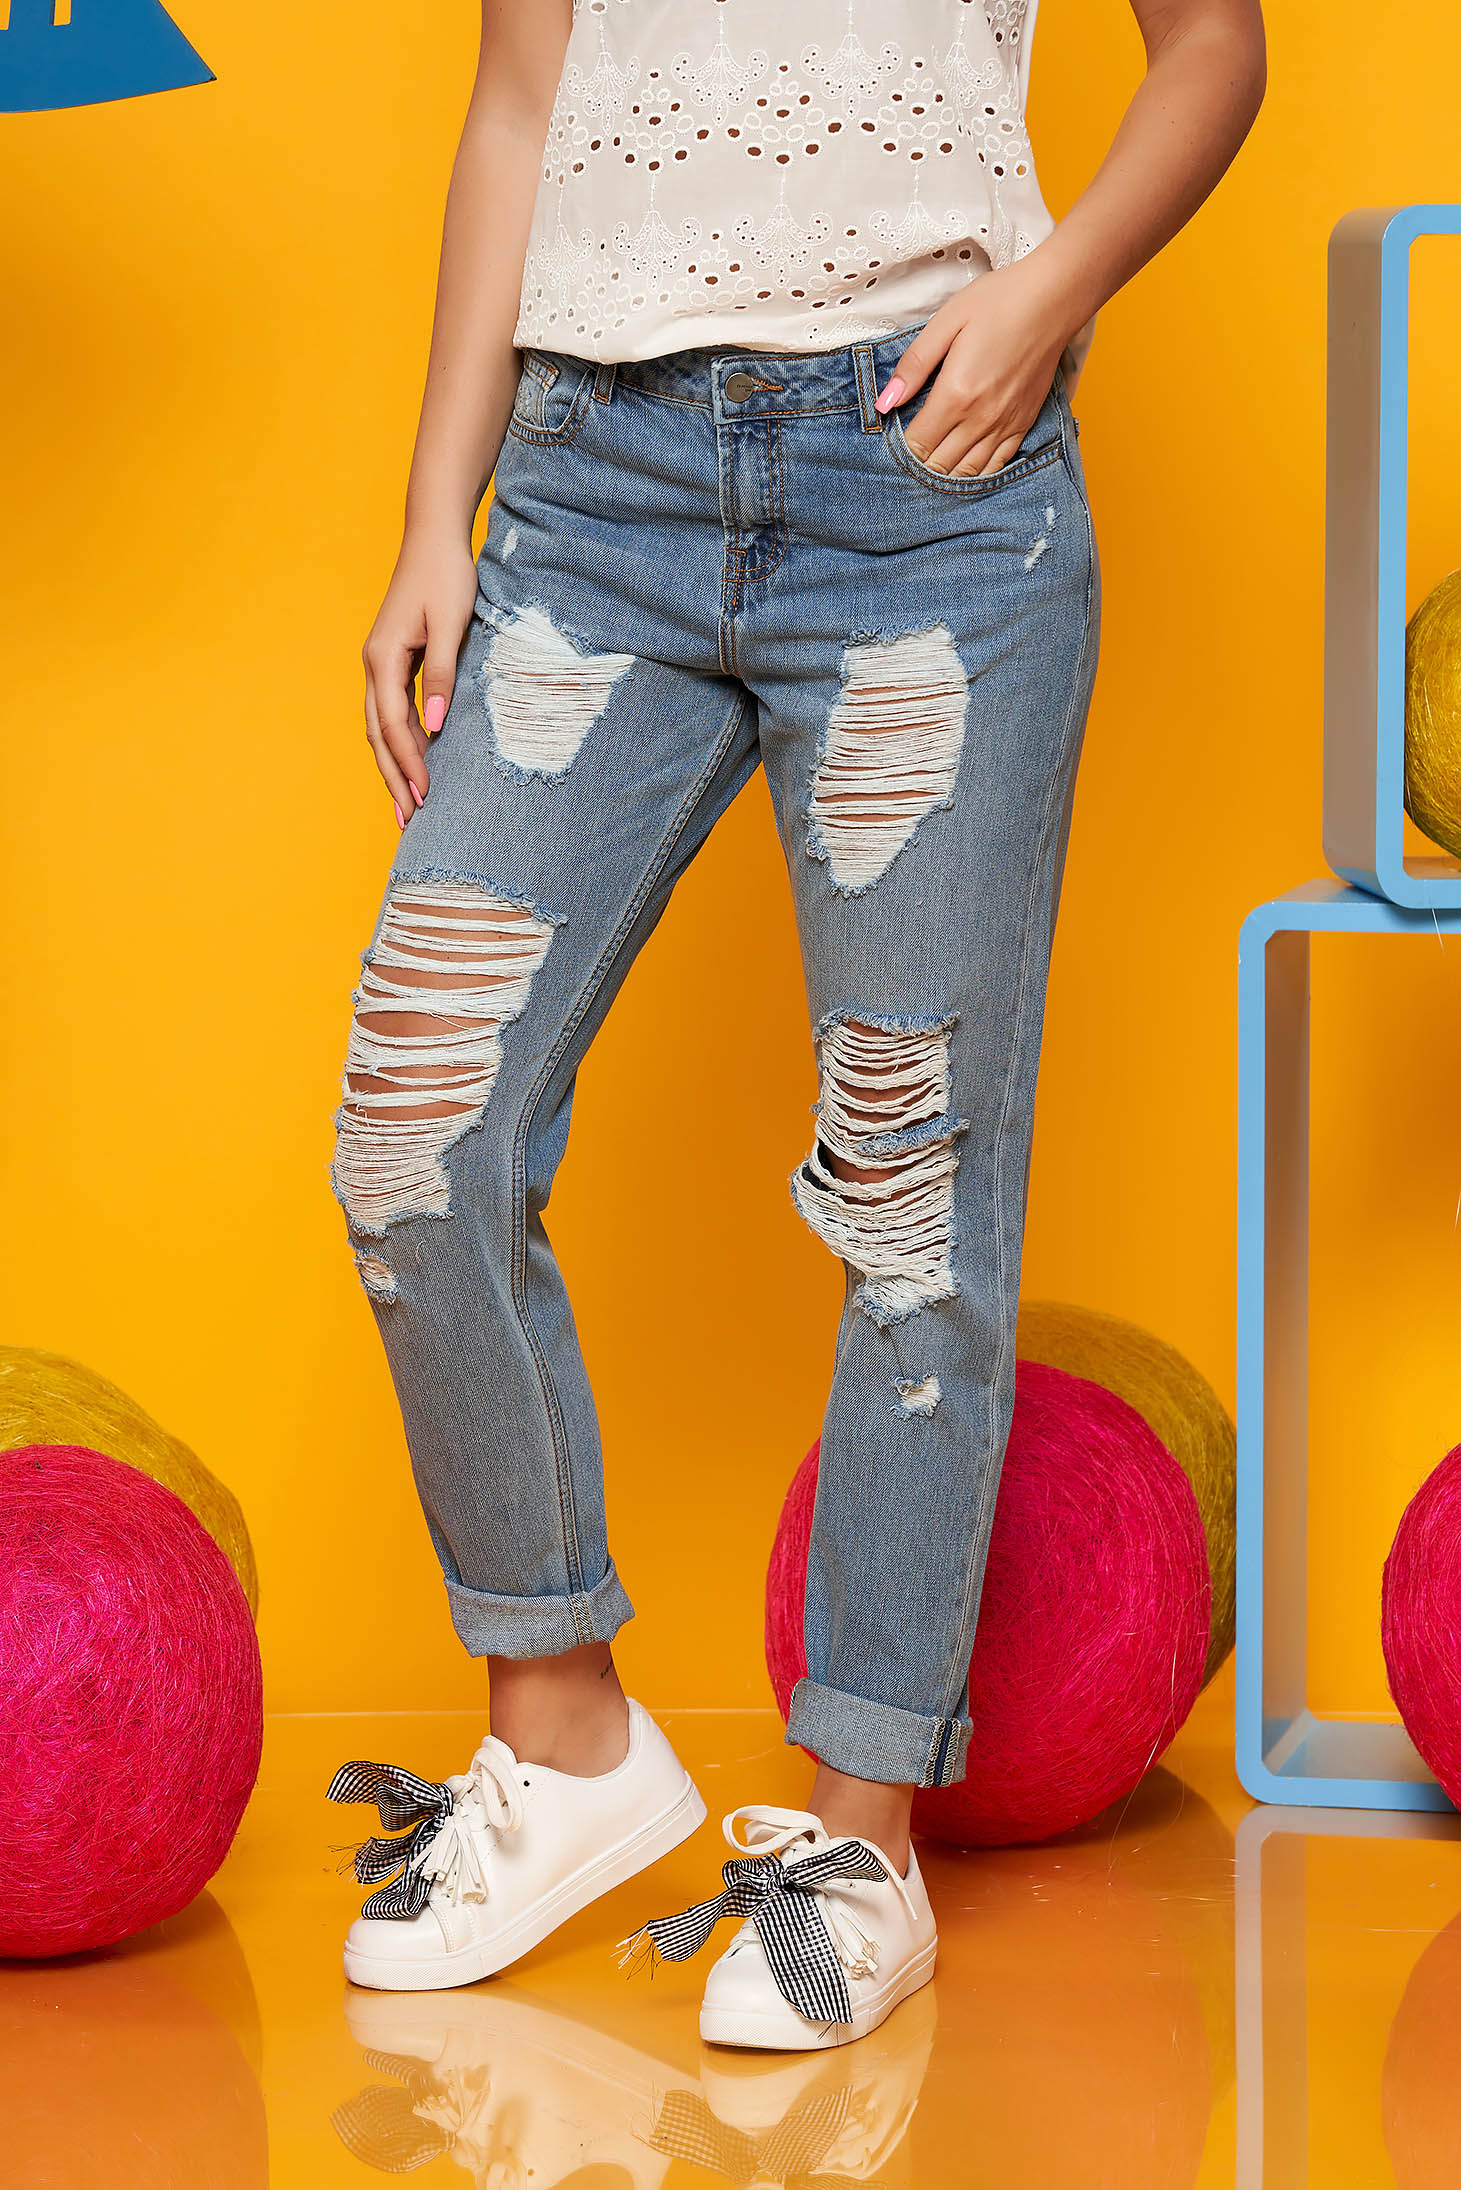 Blue casual jeans with ruptures wwith medium waist nonelastic cotton